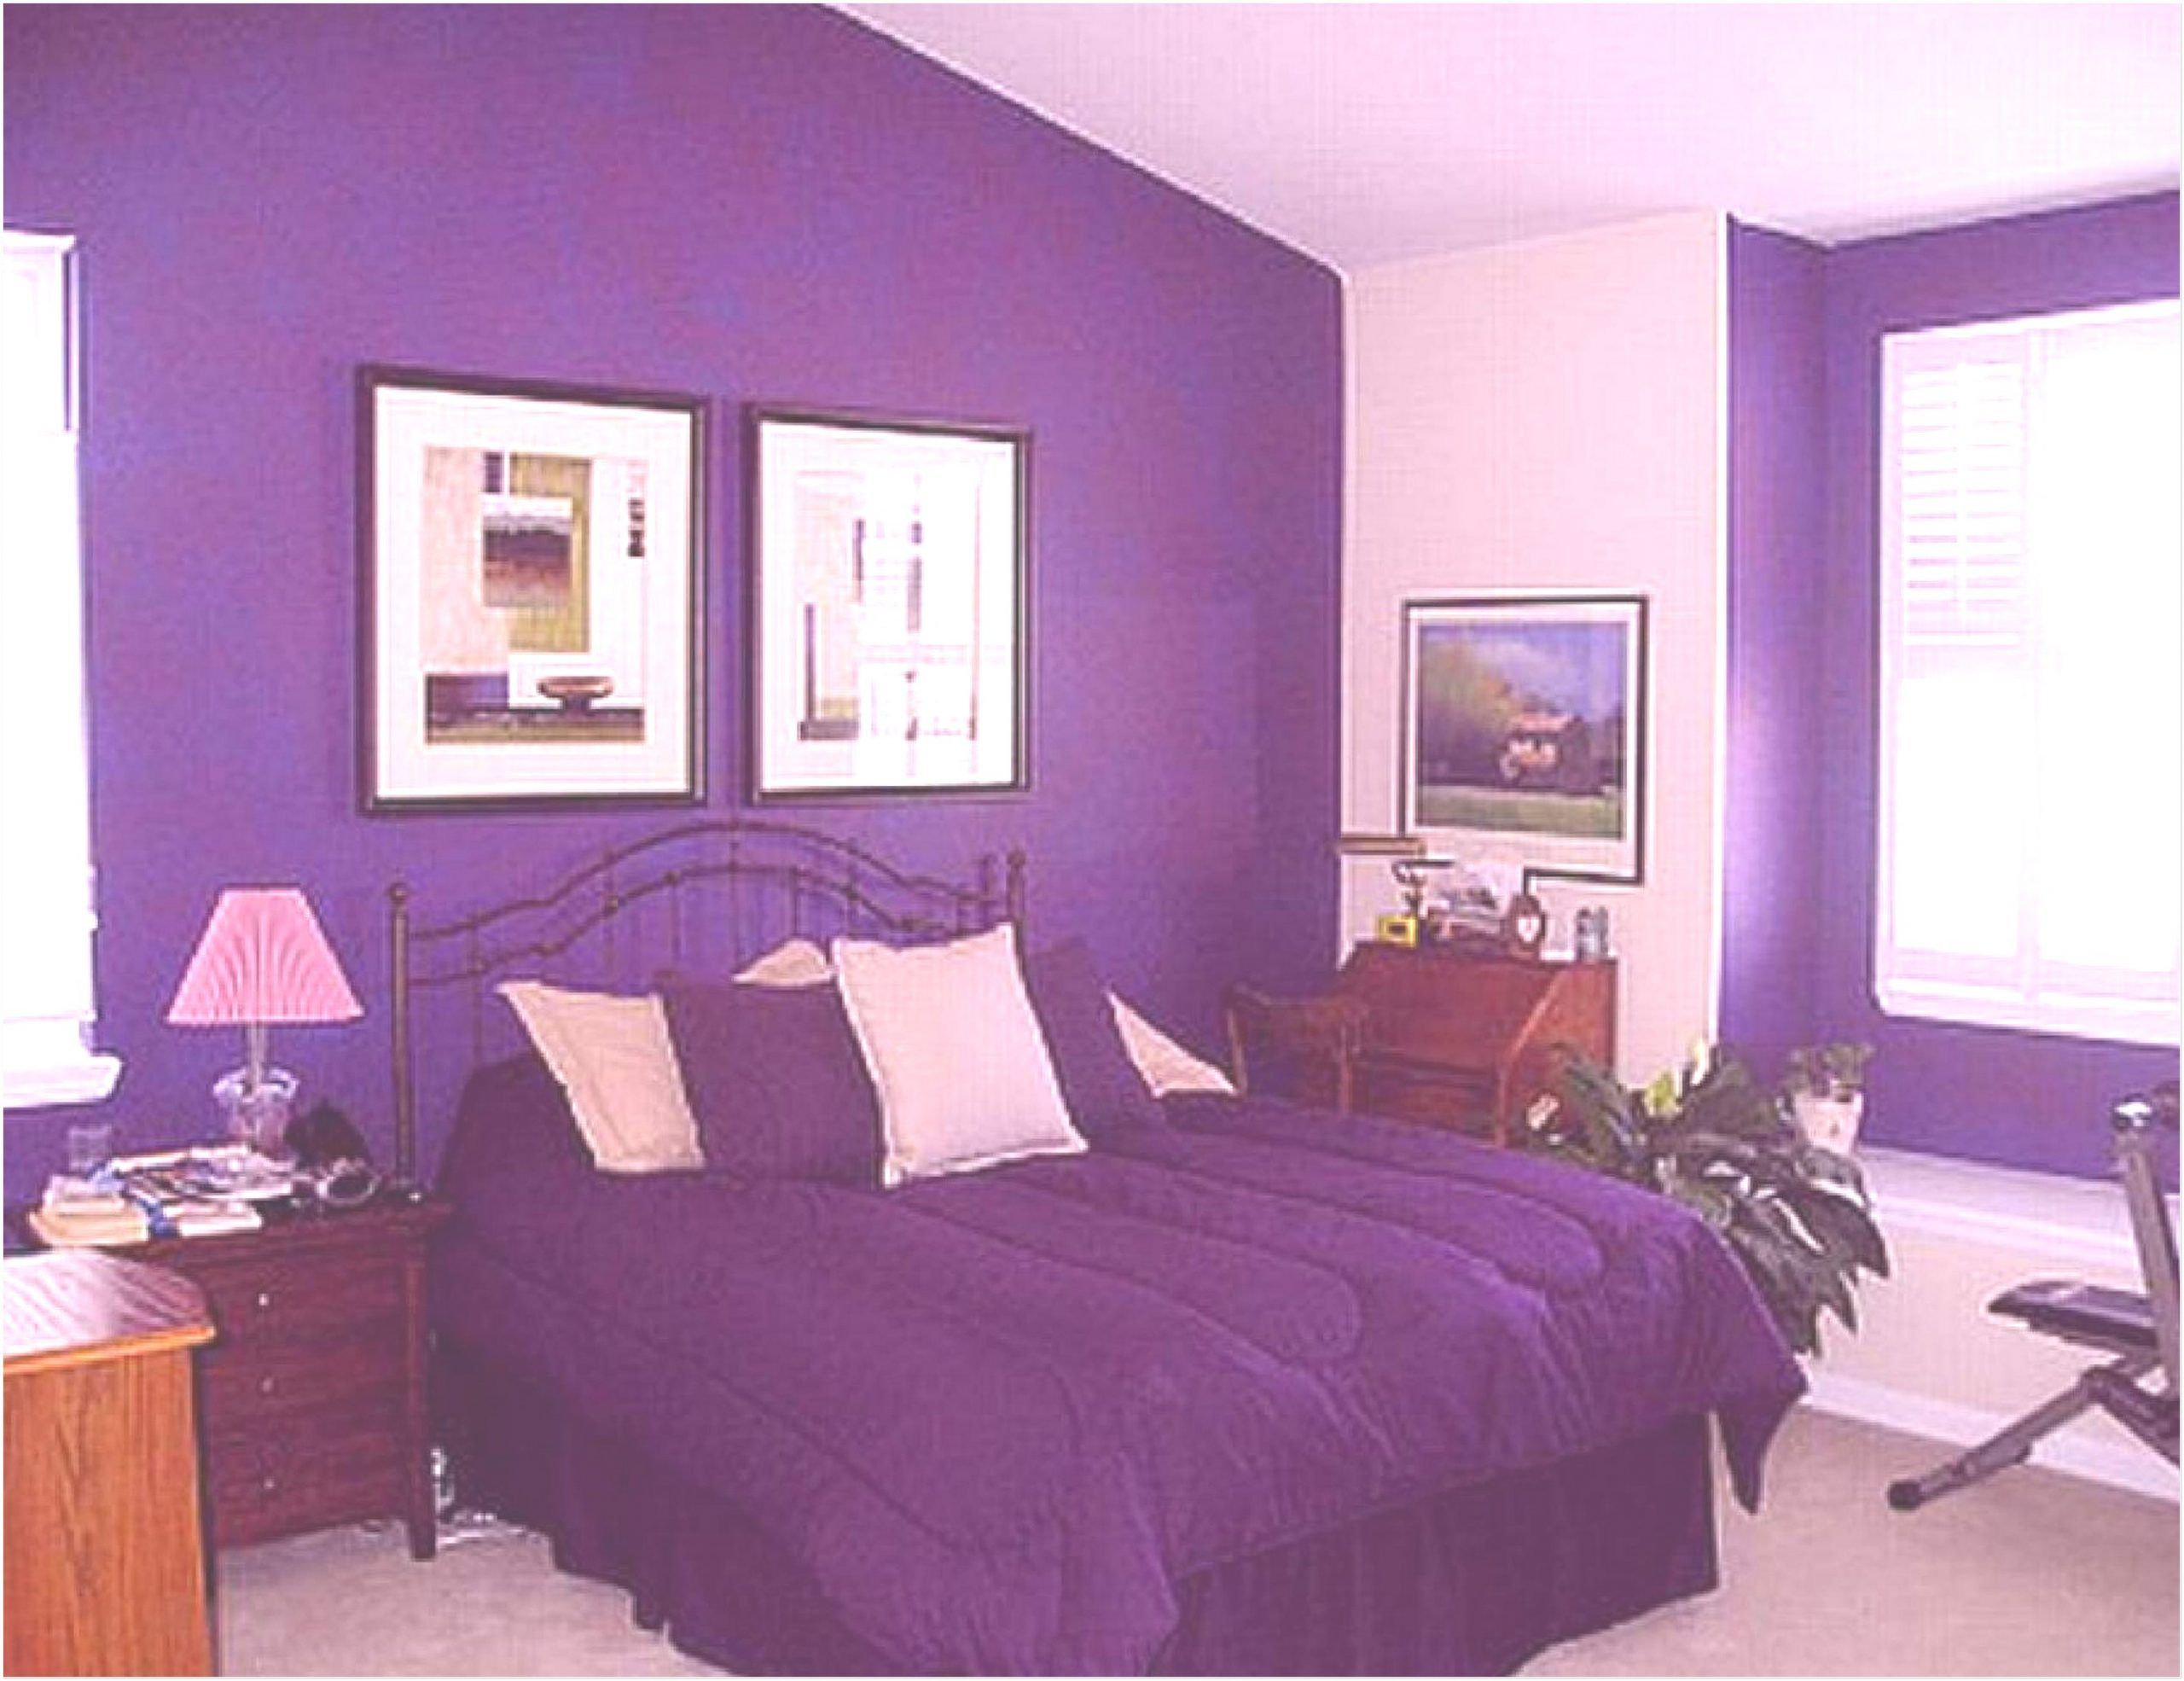 6 Unique Bedroom Wall Paint Colours That Work For Indian Homes Bedroom Wall Paint Colors Bedroom Wall Colors Wall Paint Colors